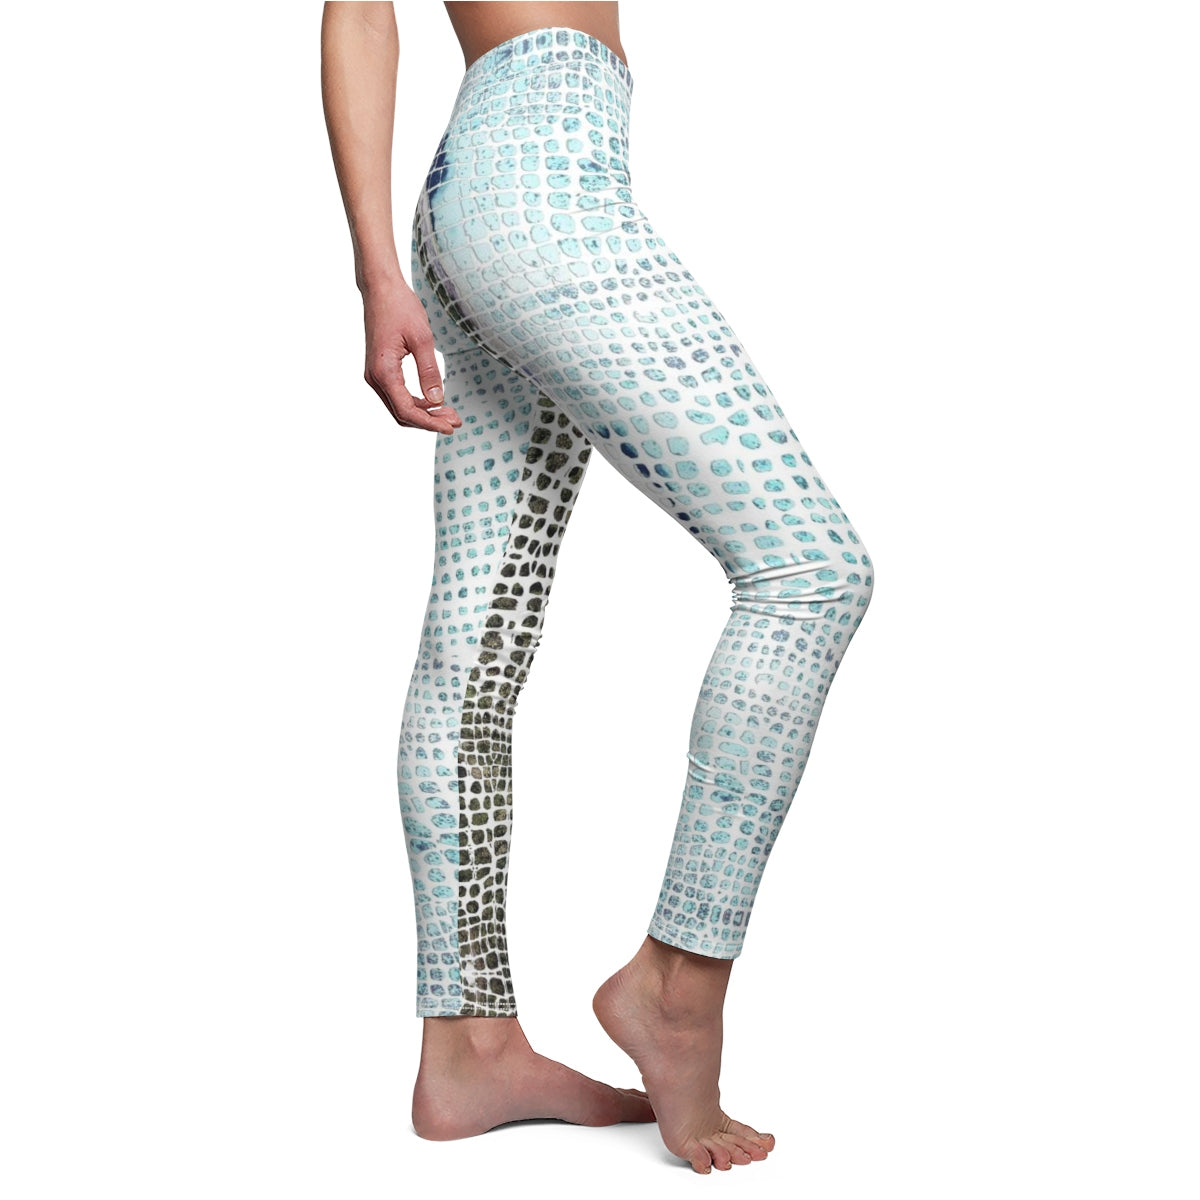 Fiji Islands #0003 (Leggings)